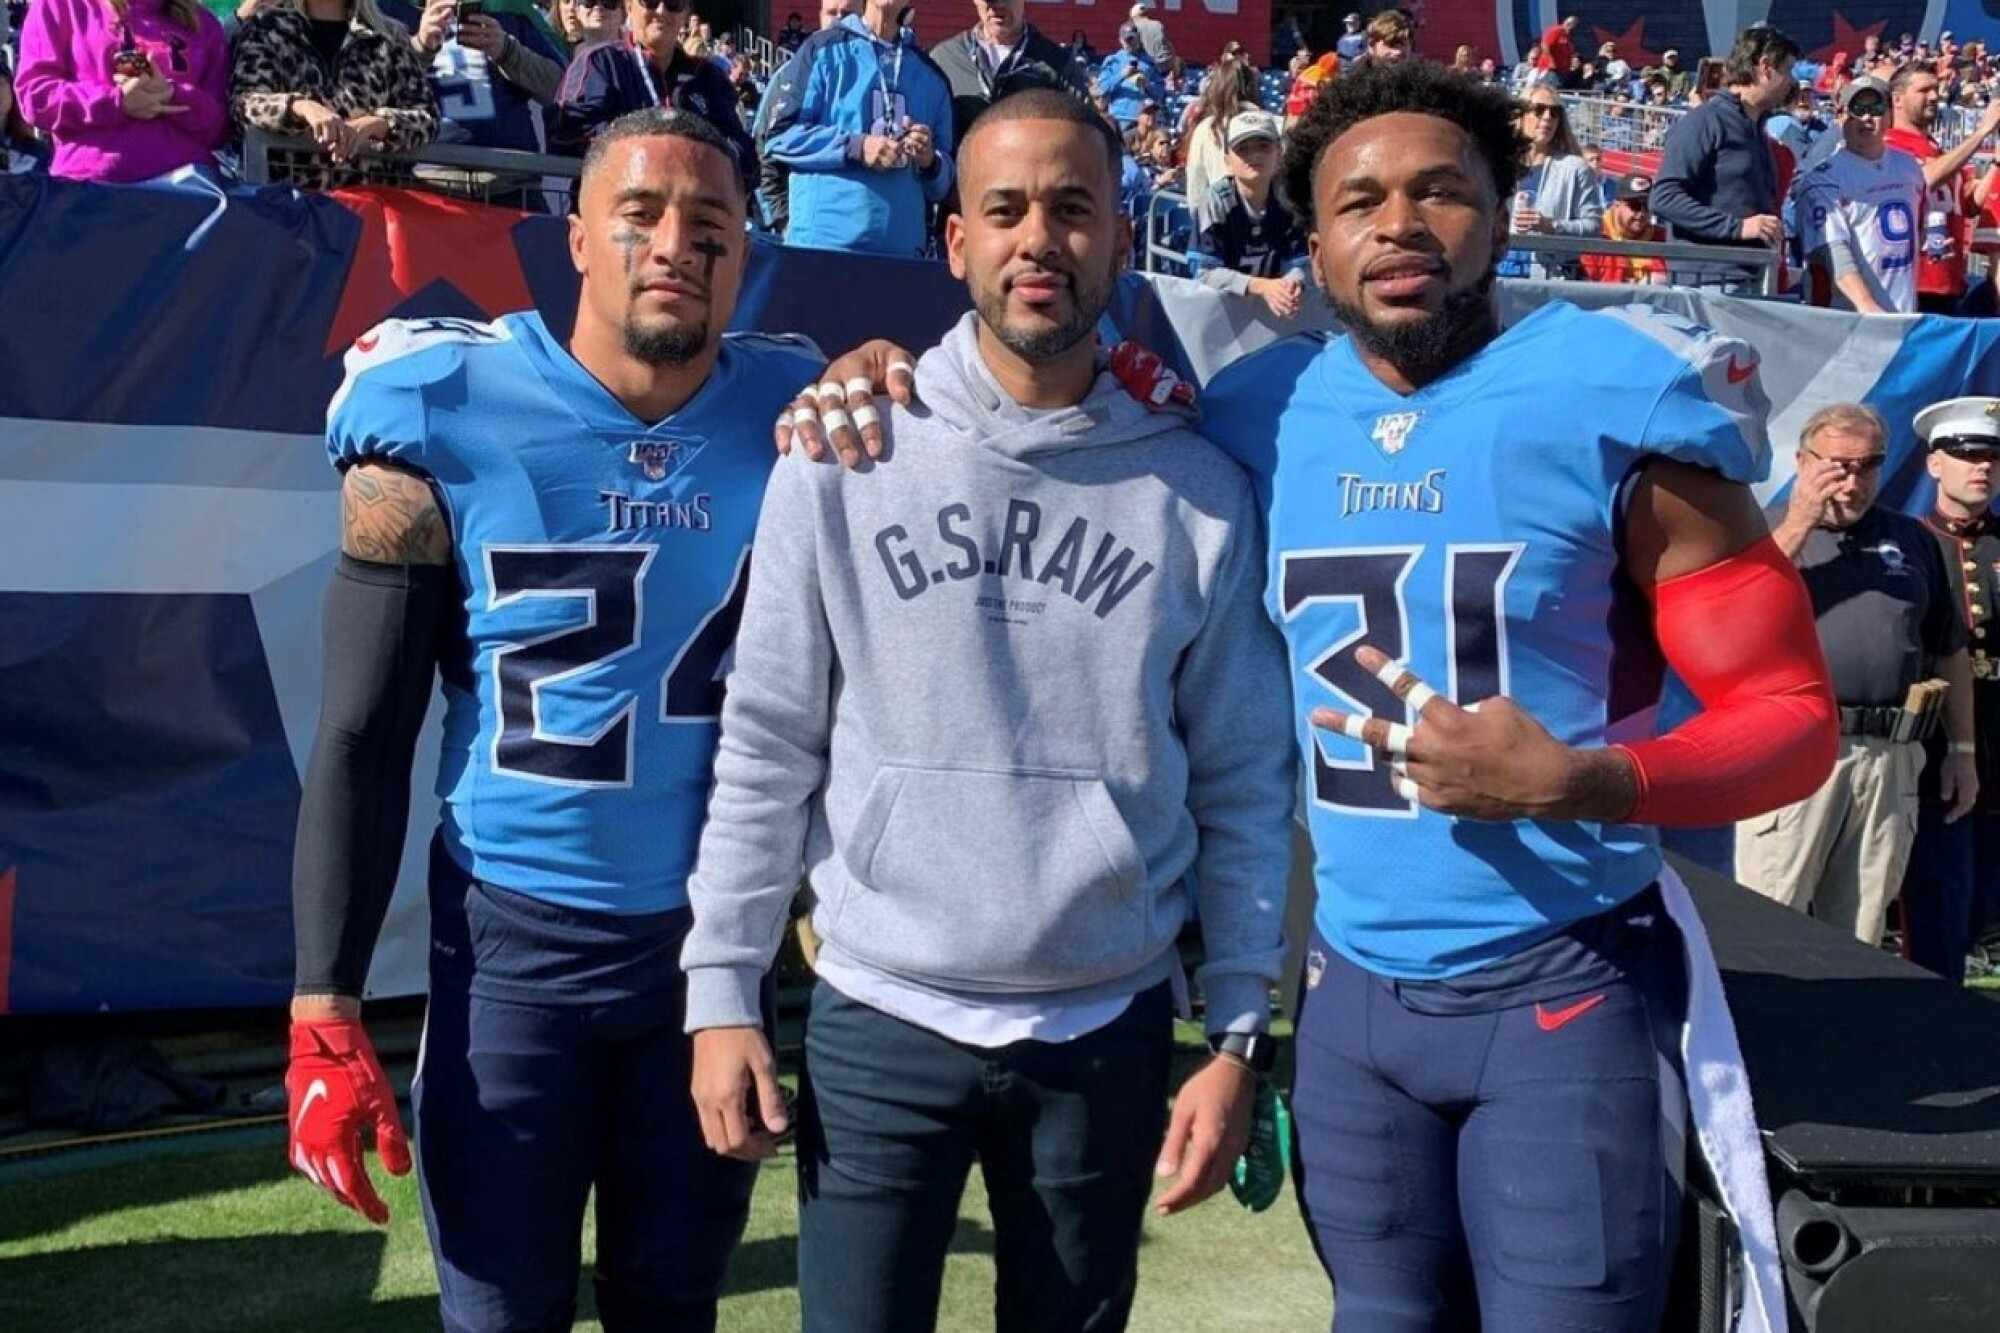 David Mulugheta is flanked by Titans players Kenny Vaccaro, left, and Kevin Byard. .